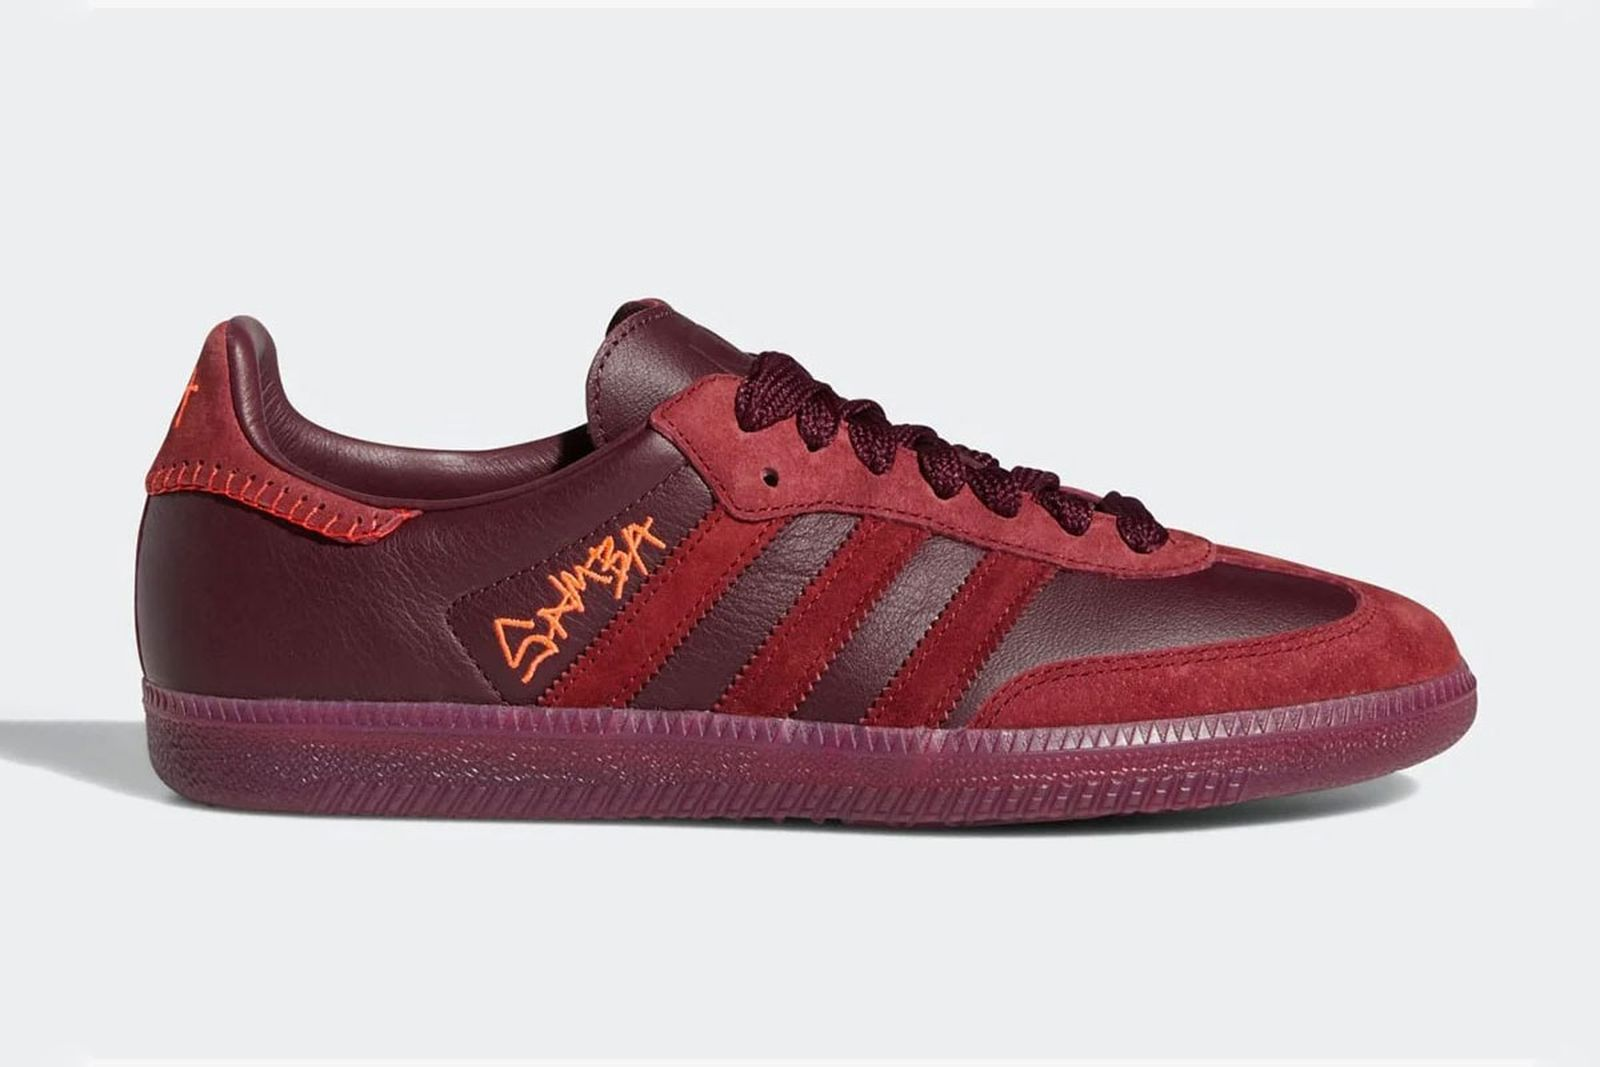 Jonah Hill adidas samba red product shot